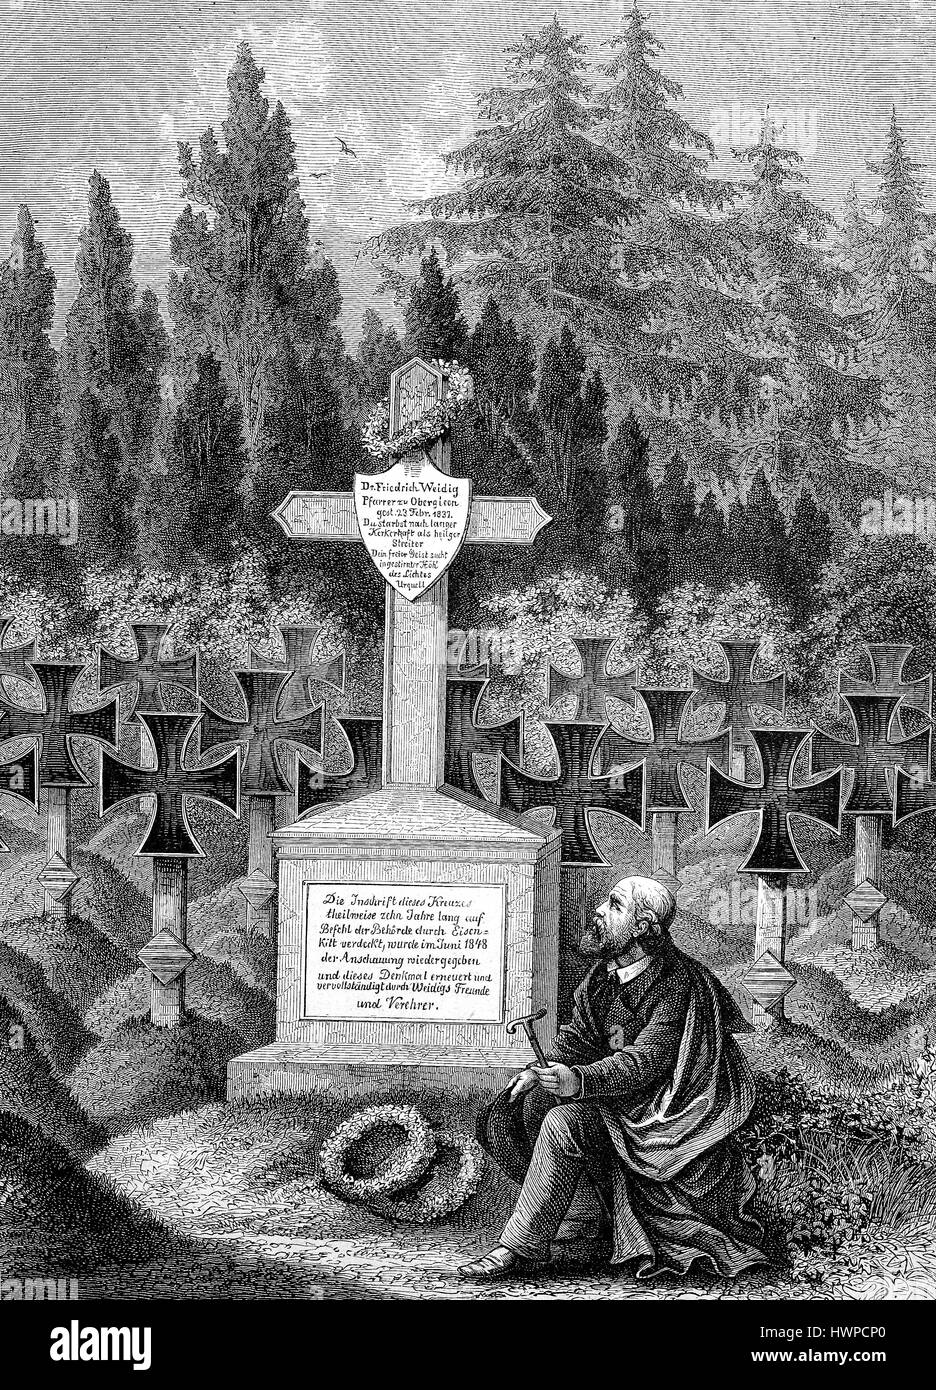 Man mourner at the tomb of Frederick Weidig at the cemetery in Darmstadt, Germany. Friedrich Ludwig Weidig, 1791 Stock Photo